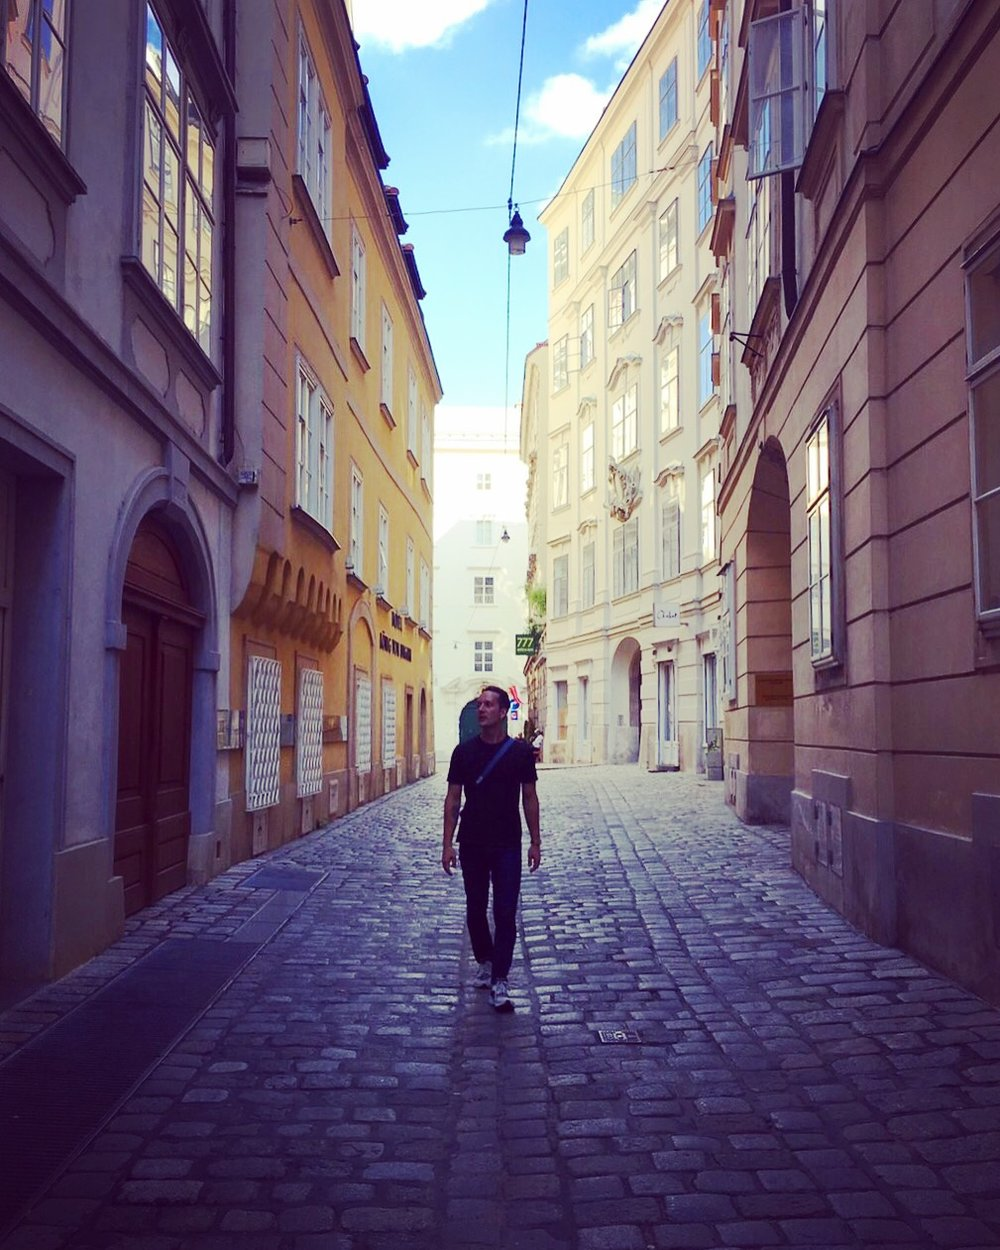 Alleyways full of history.  This one was on the way to visit Mozart's old apartment.  Vienna is so well preserved.